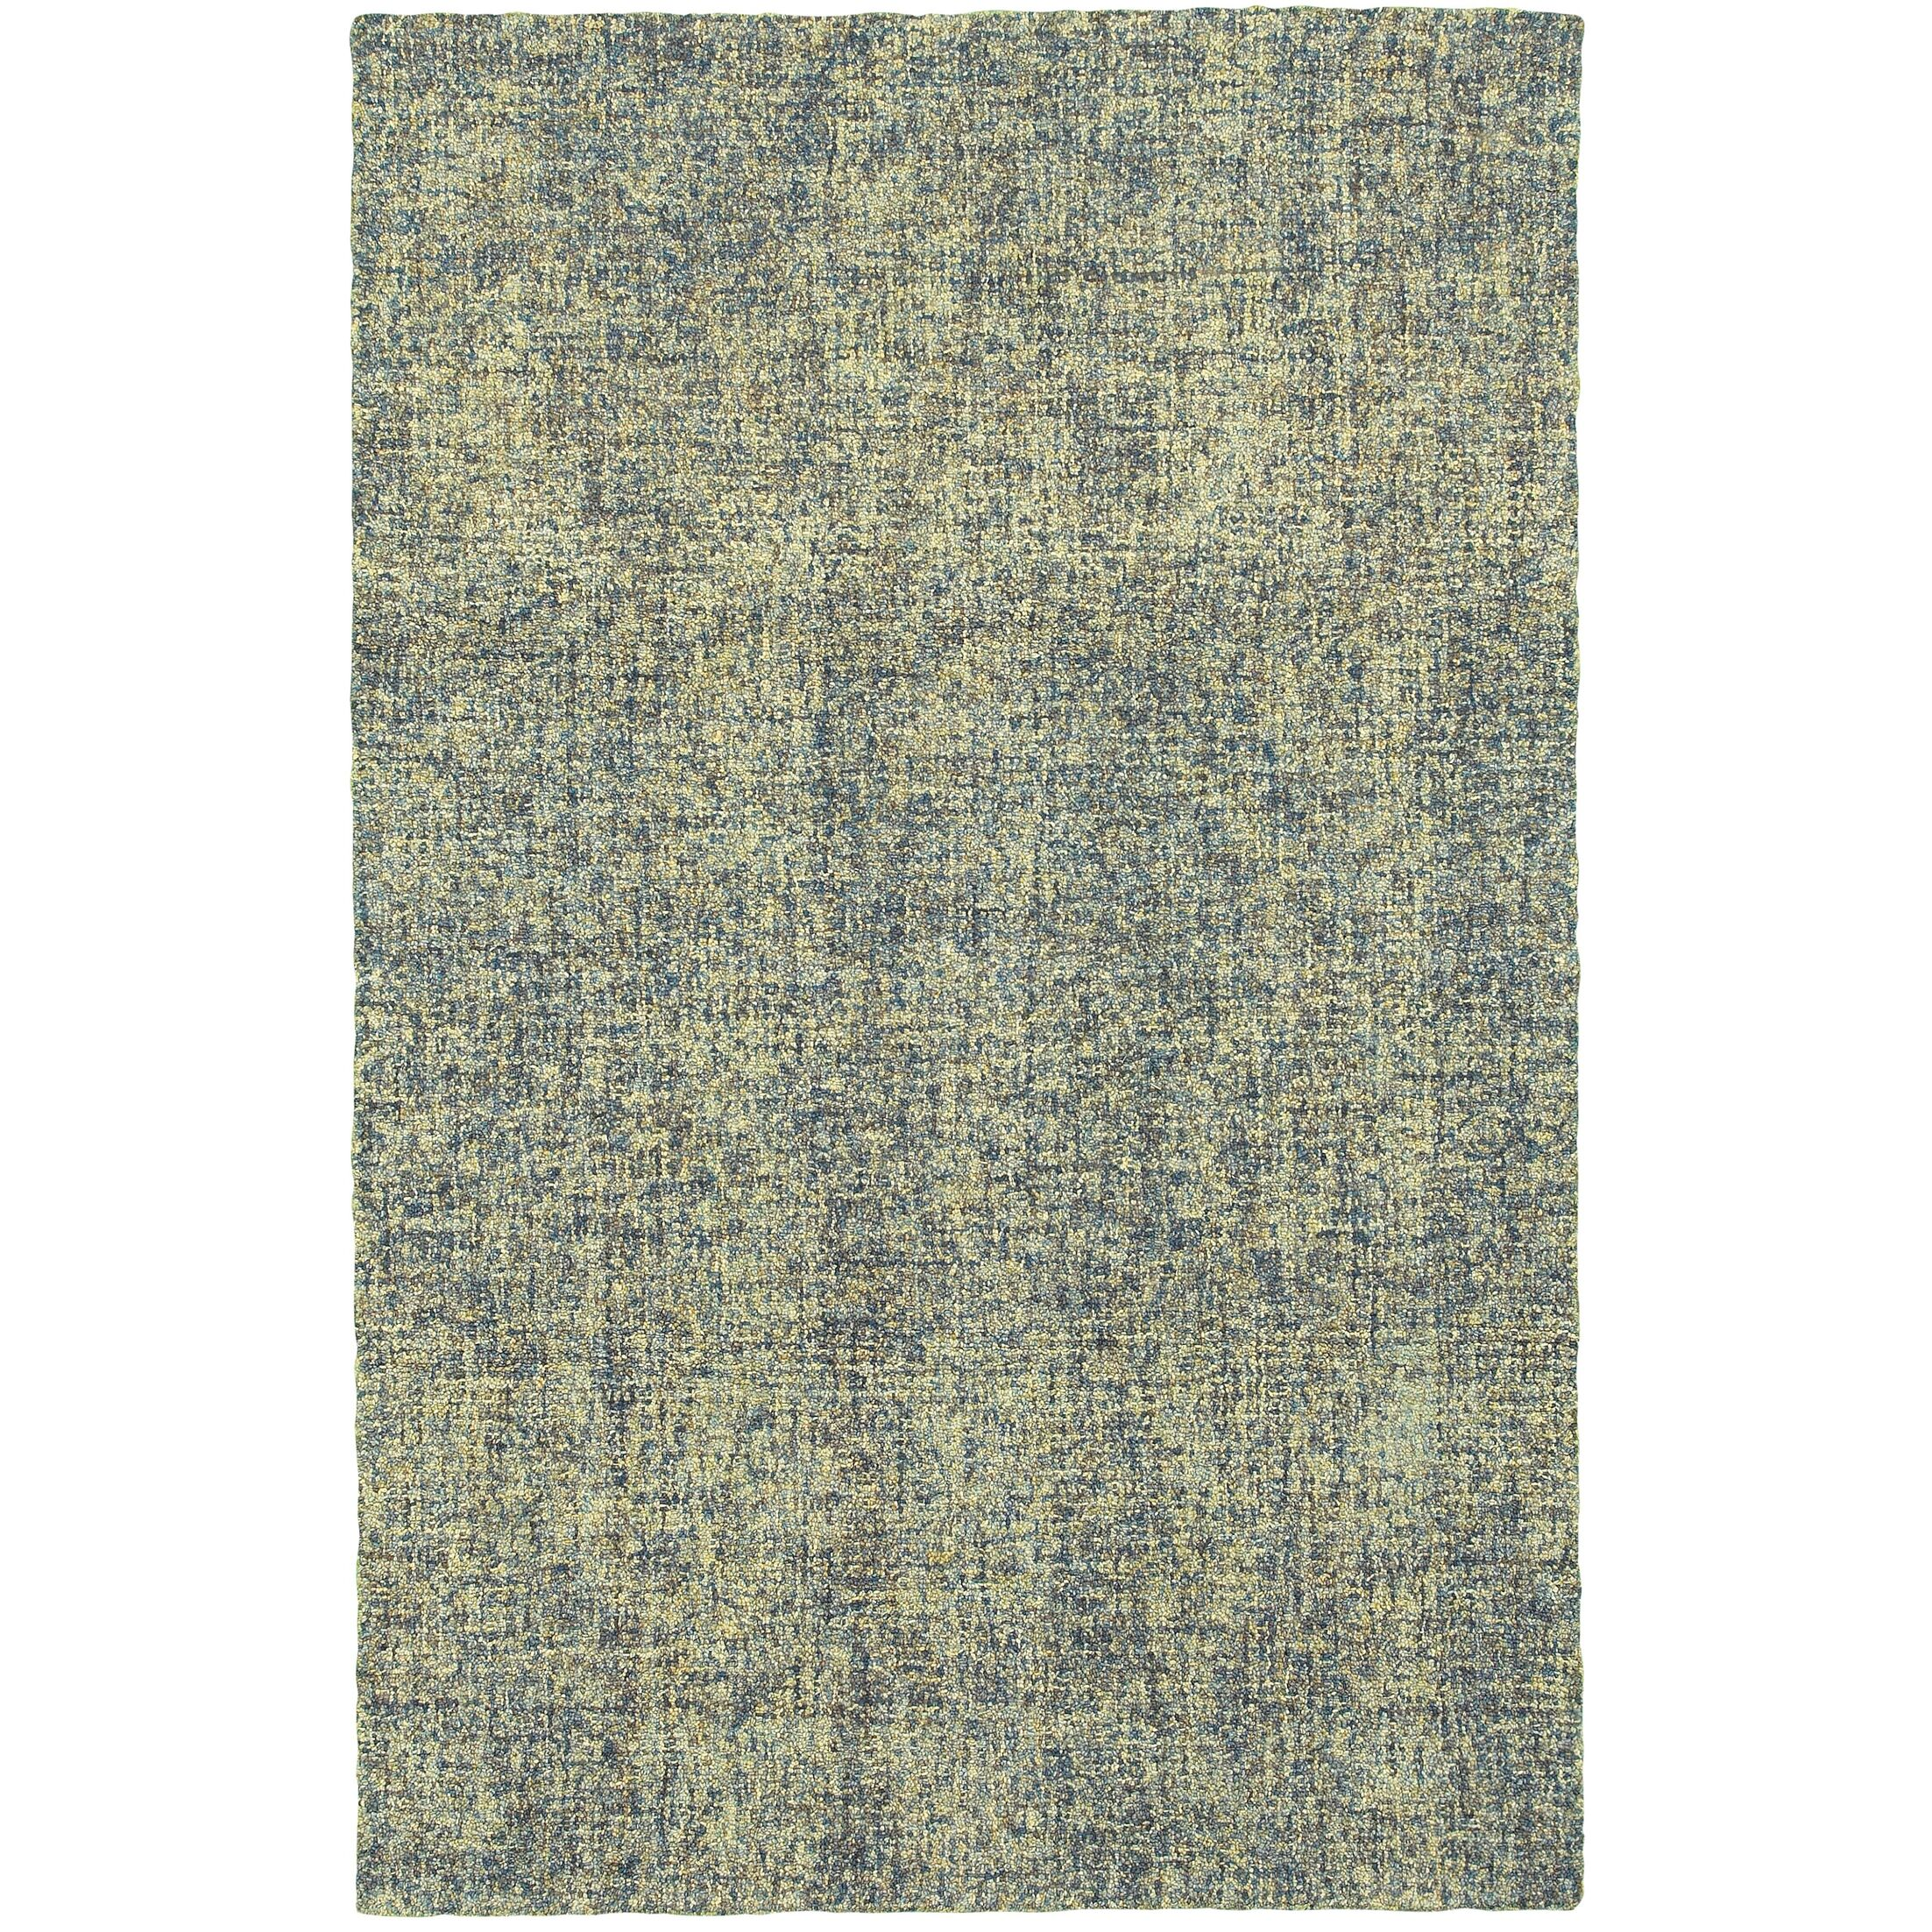 Laguerre Boucle Hand-Hooked Wool Blue/Green Area Rug Rug Size: Rectangle 10' x 13'